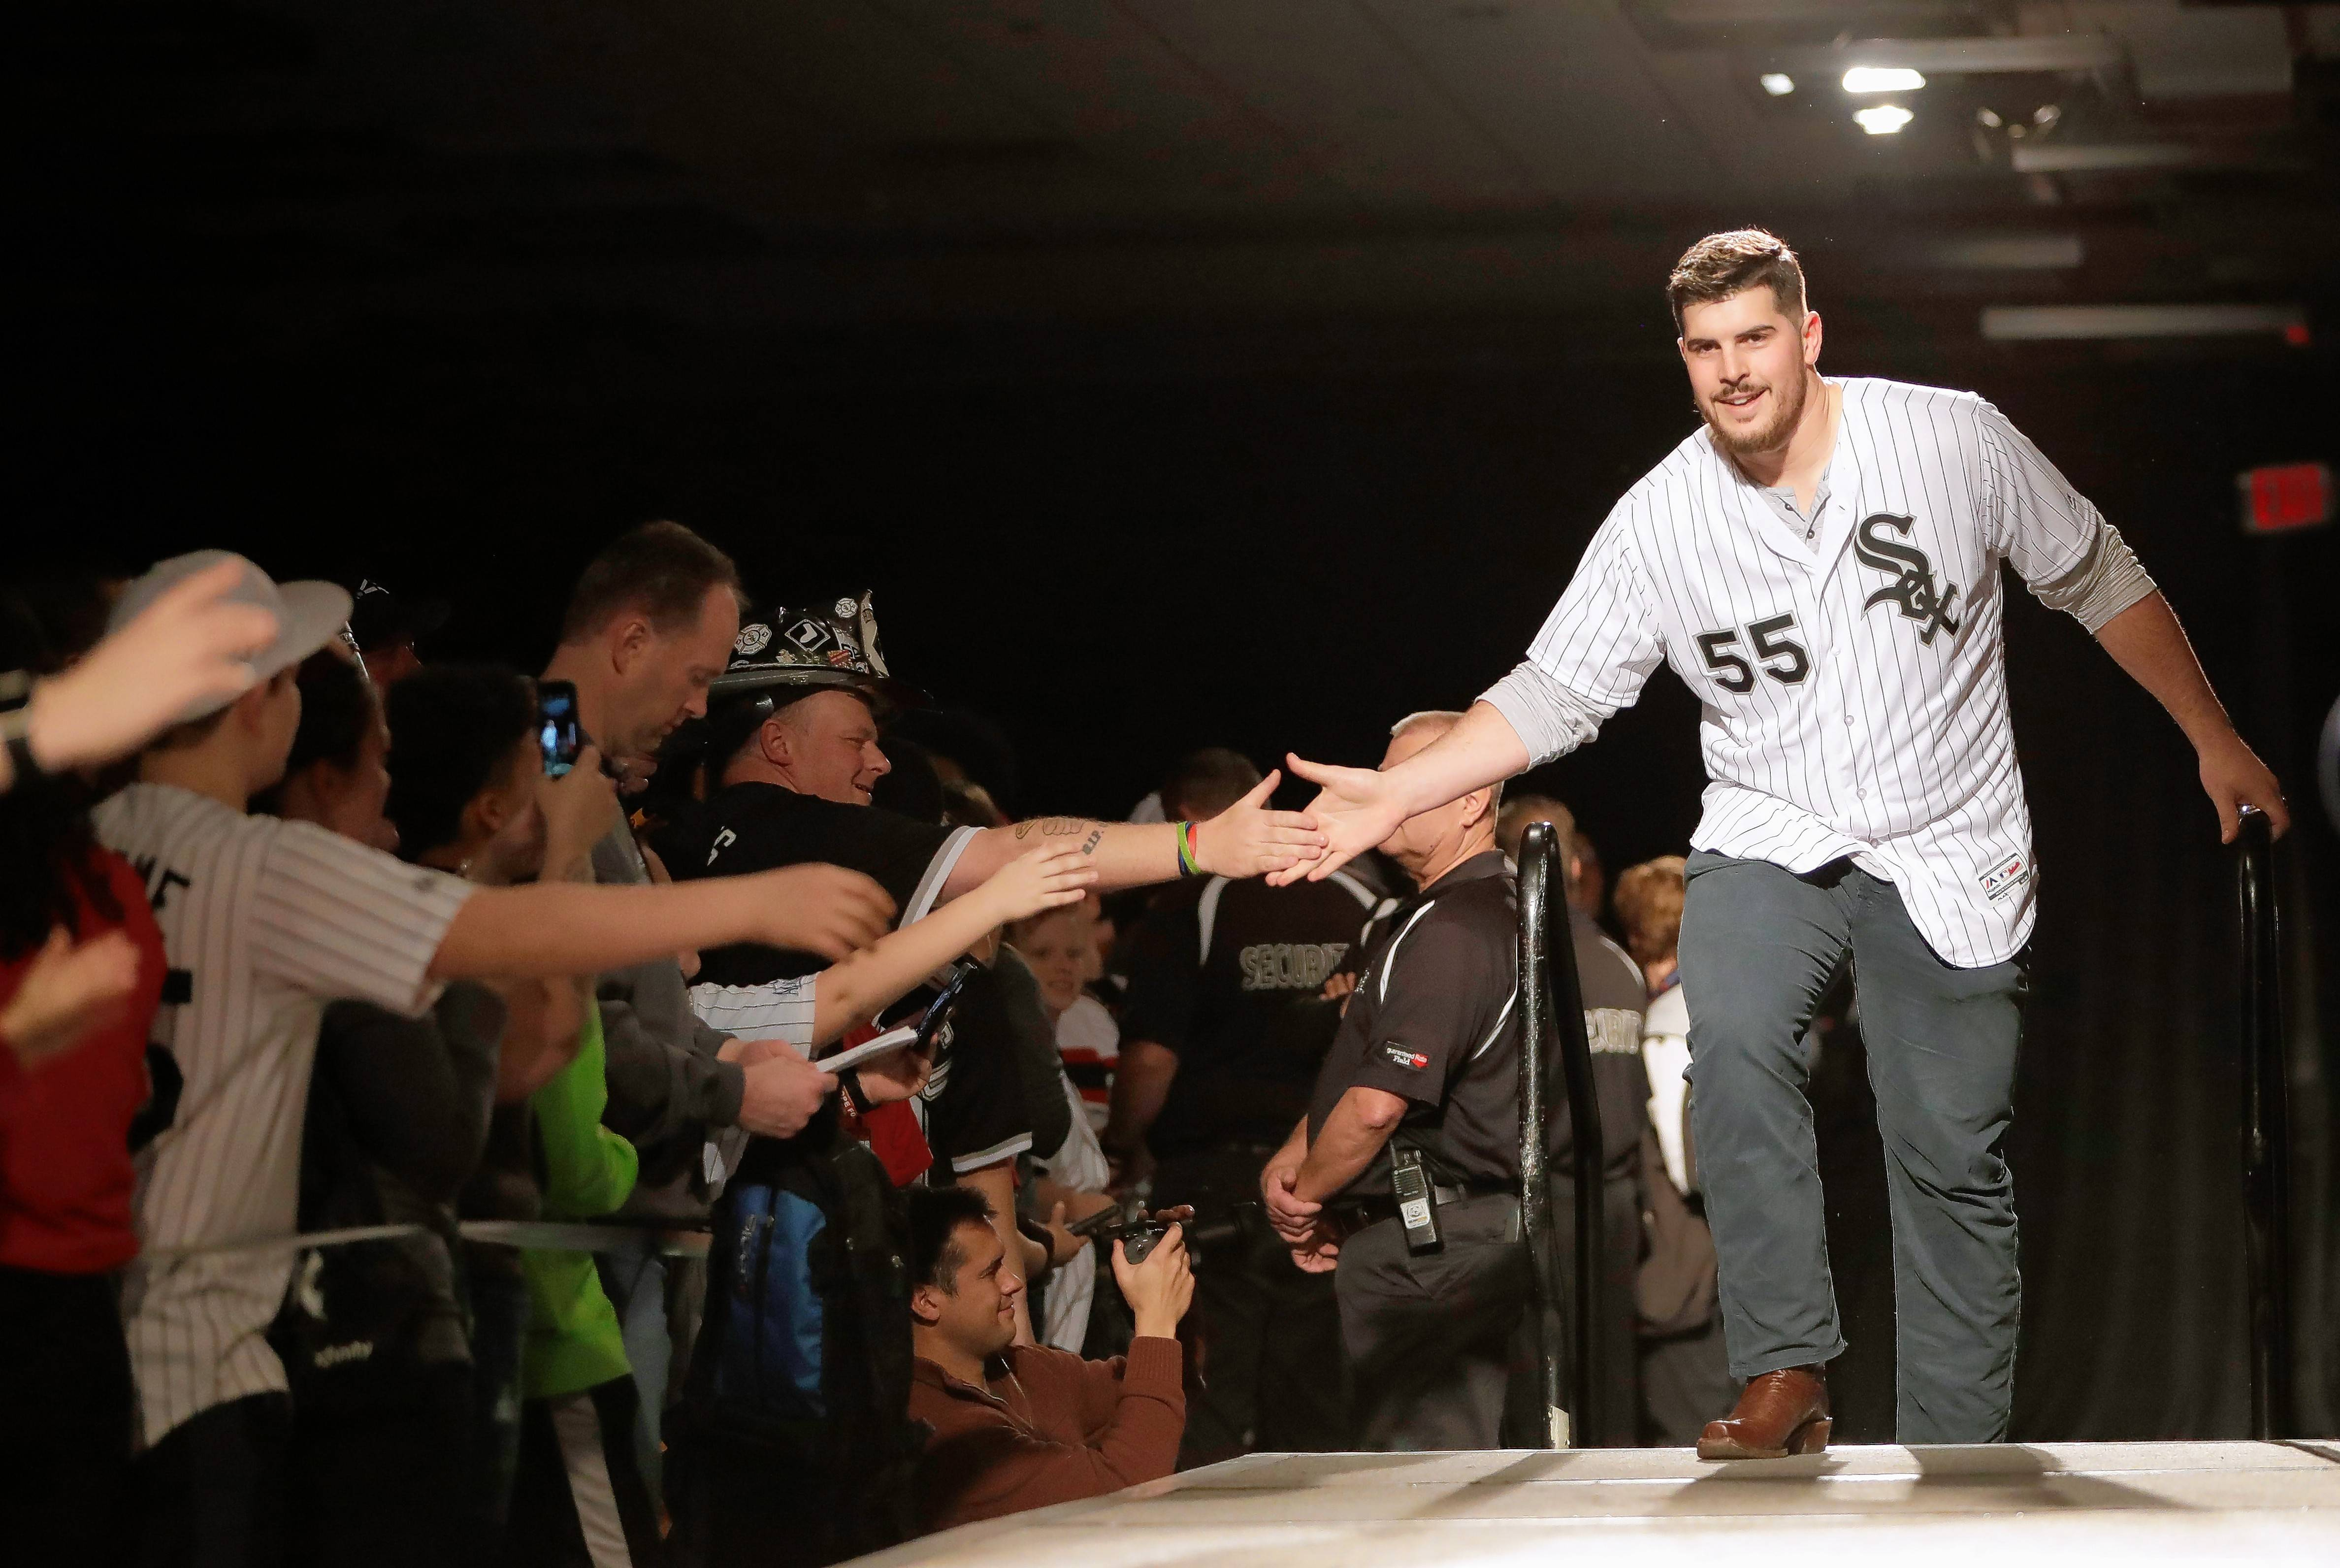 After having arthroscopic shoulder surgery last September, Chicago White Sox starting pitcher Carlos Rodon was given a 6- to 8-month timetable for recovery. Rodon is set to start a throwing program next week.